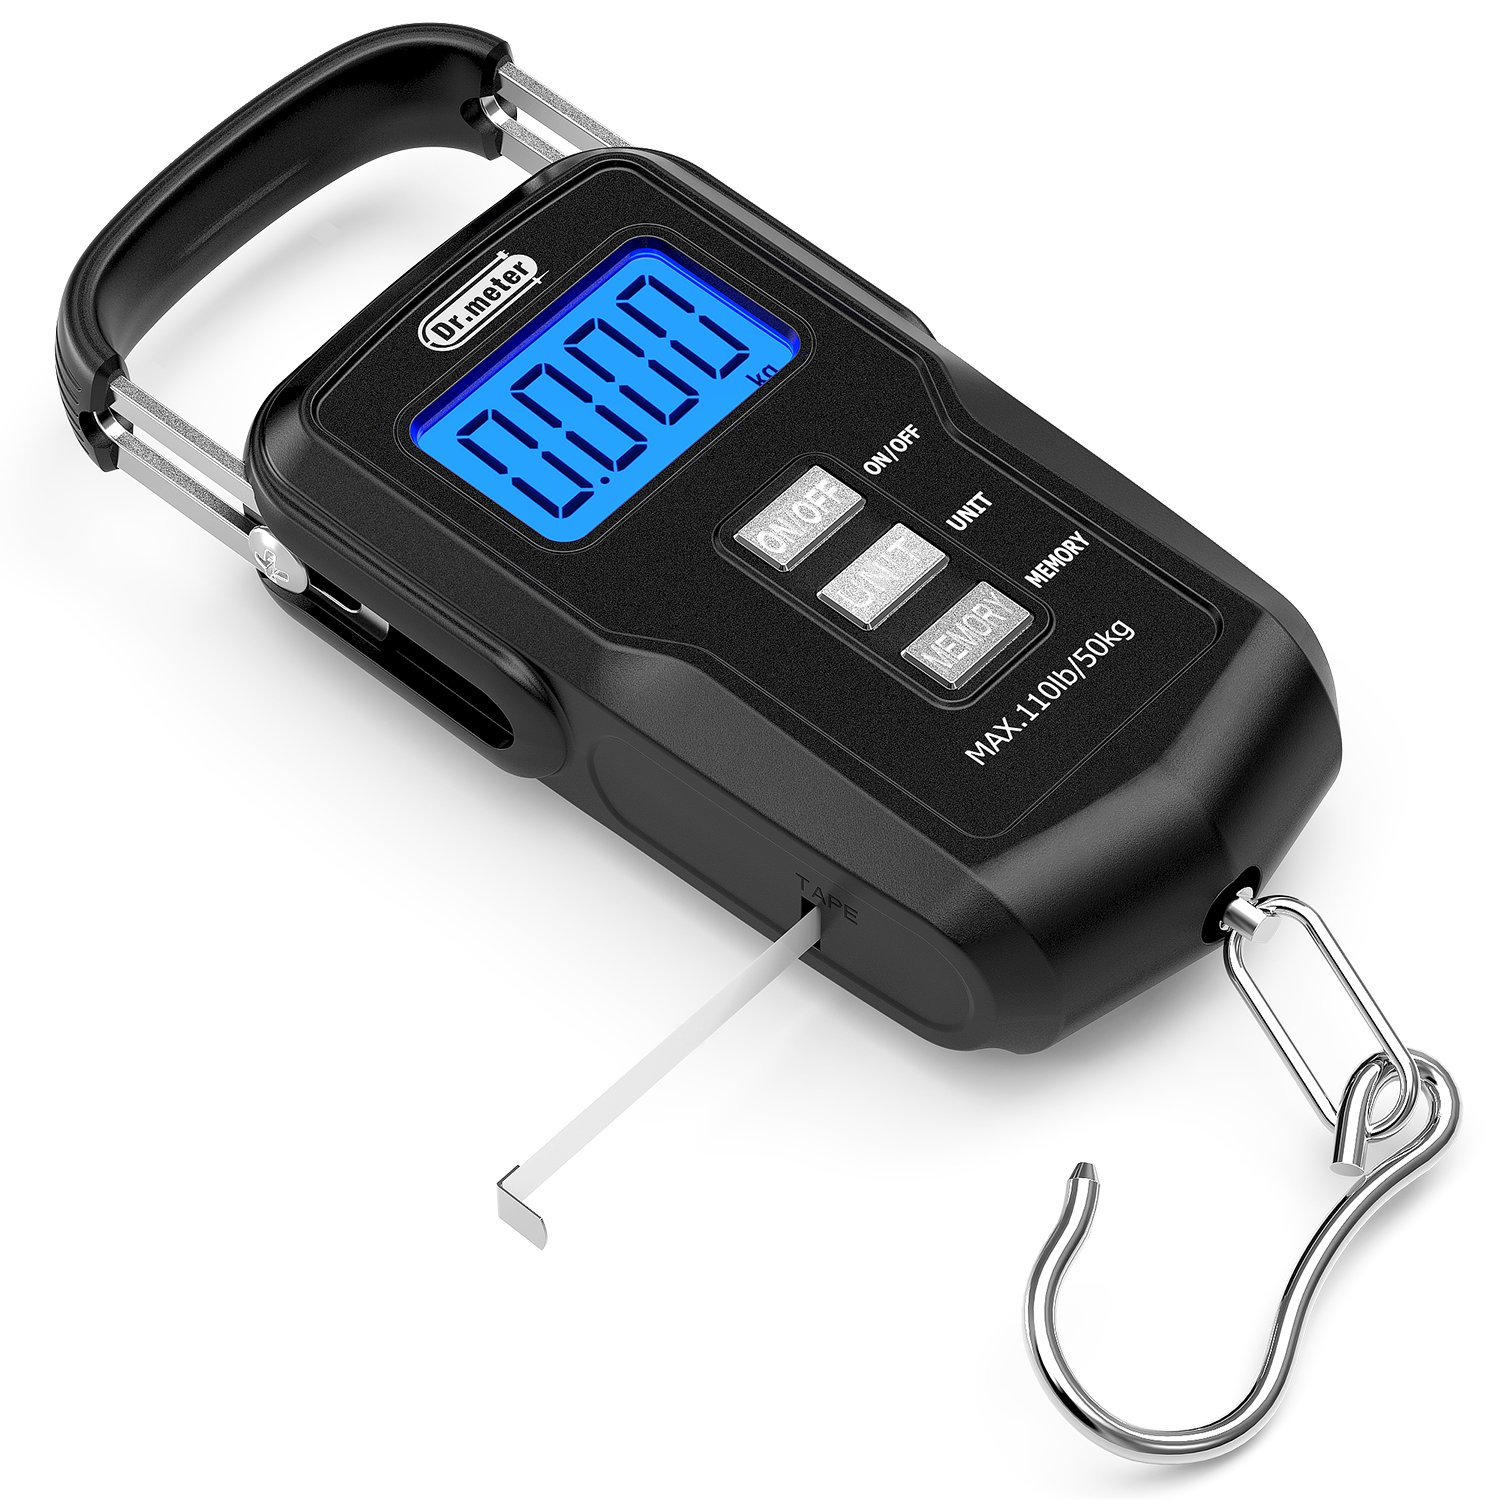 [Upgraded] Dr.meter FS01 Fishing Scale, 110lb/50kg Digital Hanging Scale with Backlit LCD Display, Measuring Tape and 2 AAA Batteries by Dr.meter